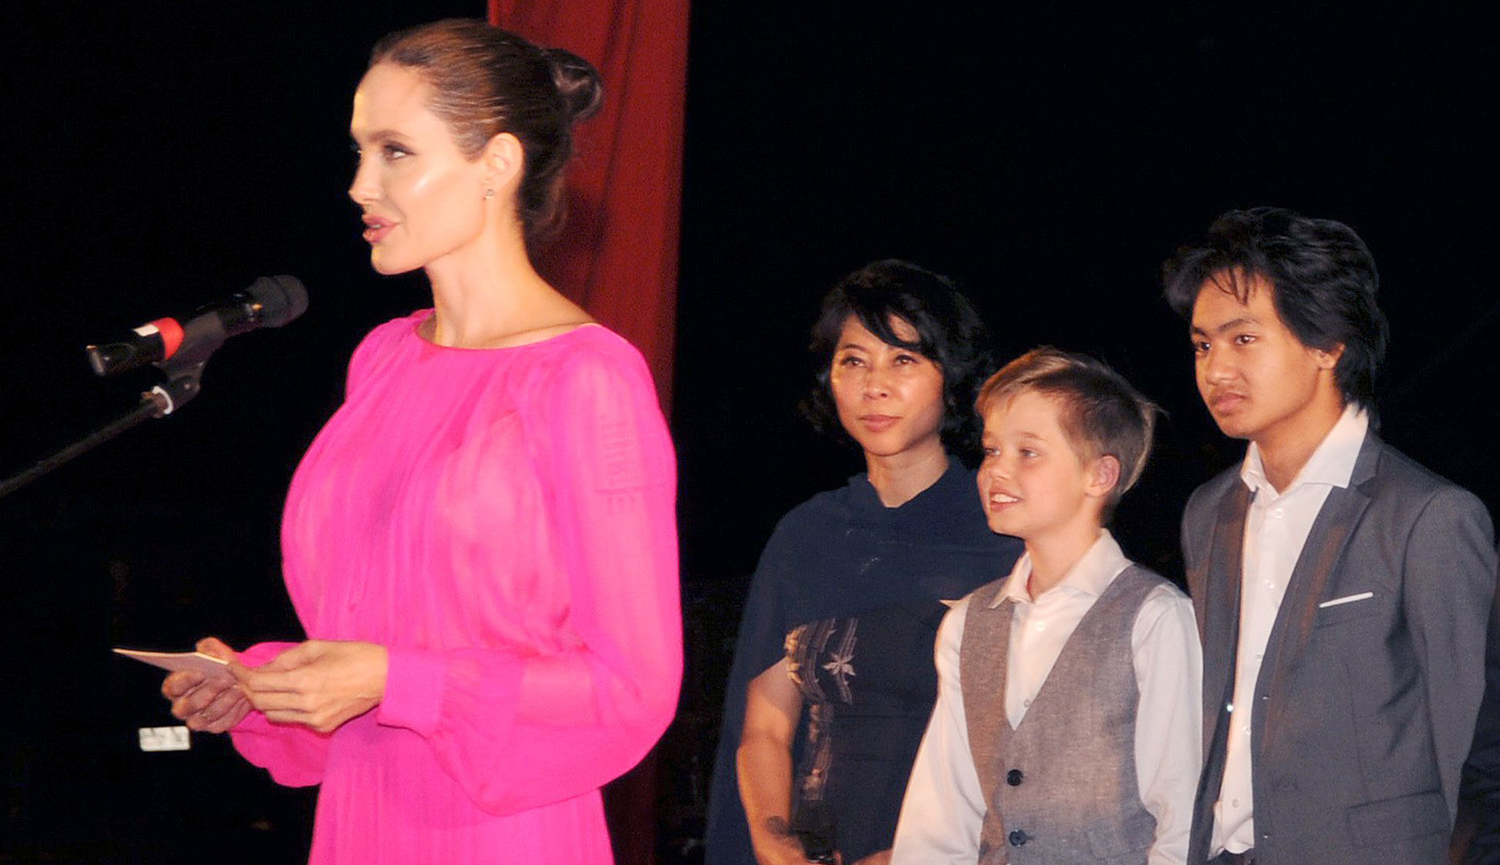 angelina jolie news newslocker angelina jolie speaks on stage while premiering her new film first they killed my father on saturday night 18 at the elephant terrace inside the